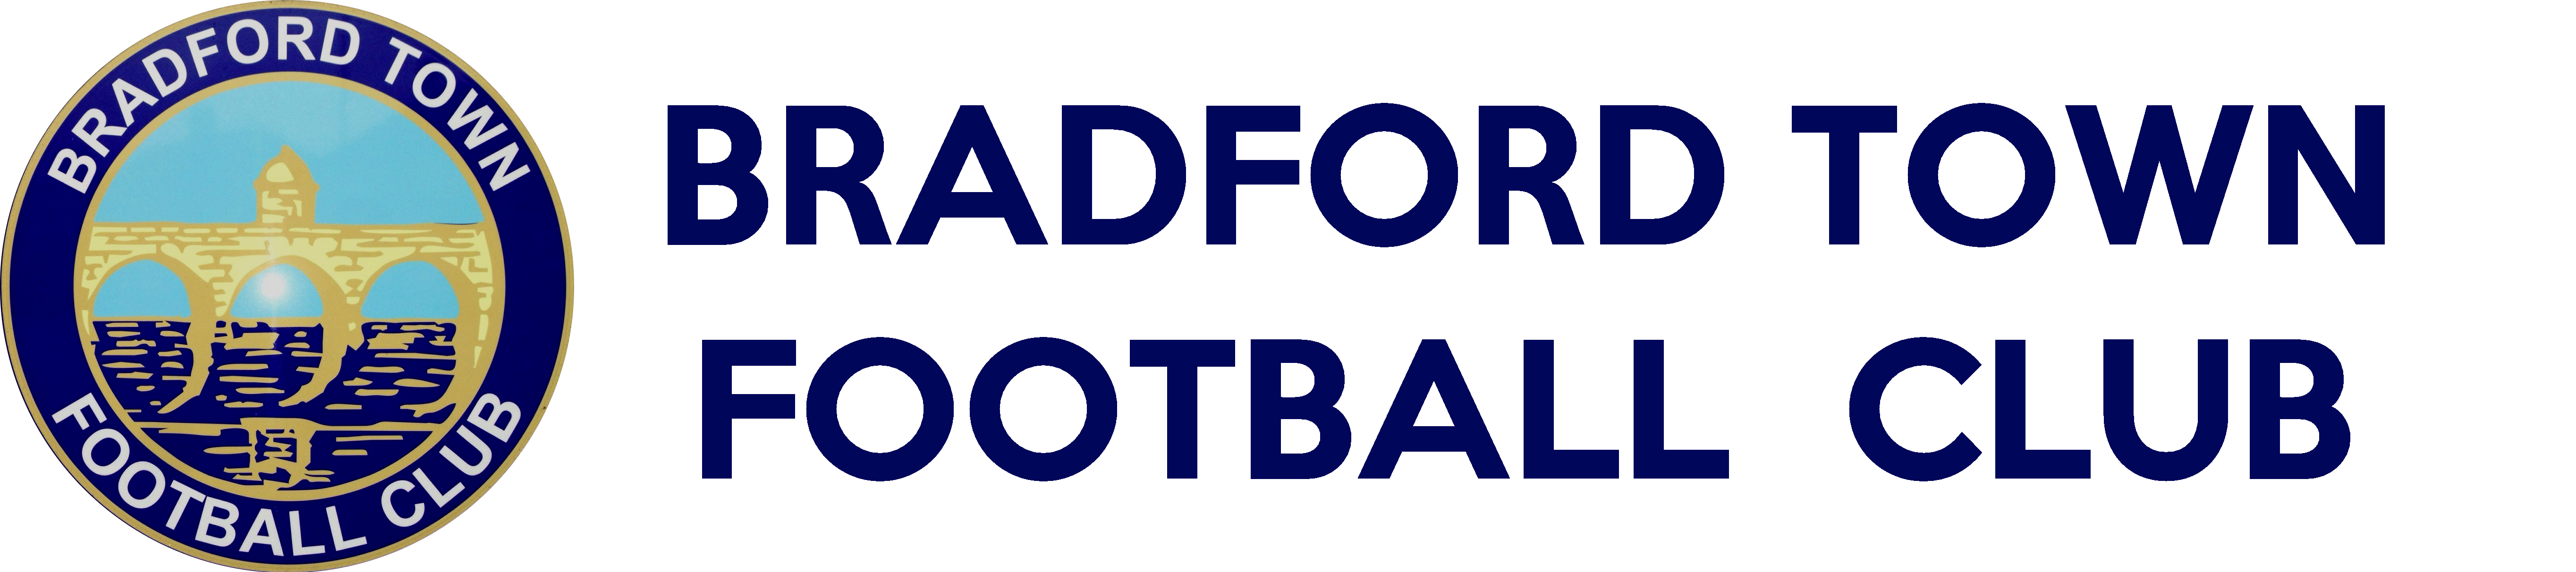 Welcome to the Official Website of Bradford Town F.C.